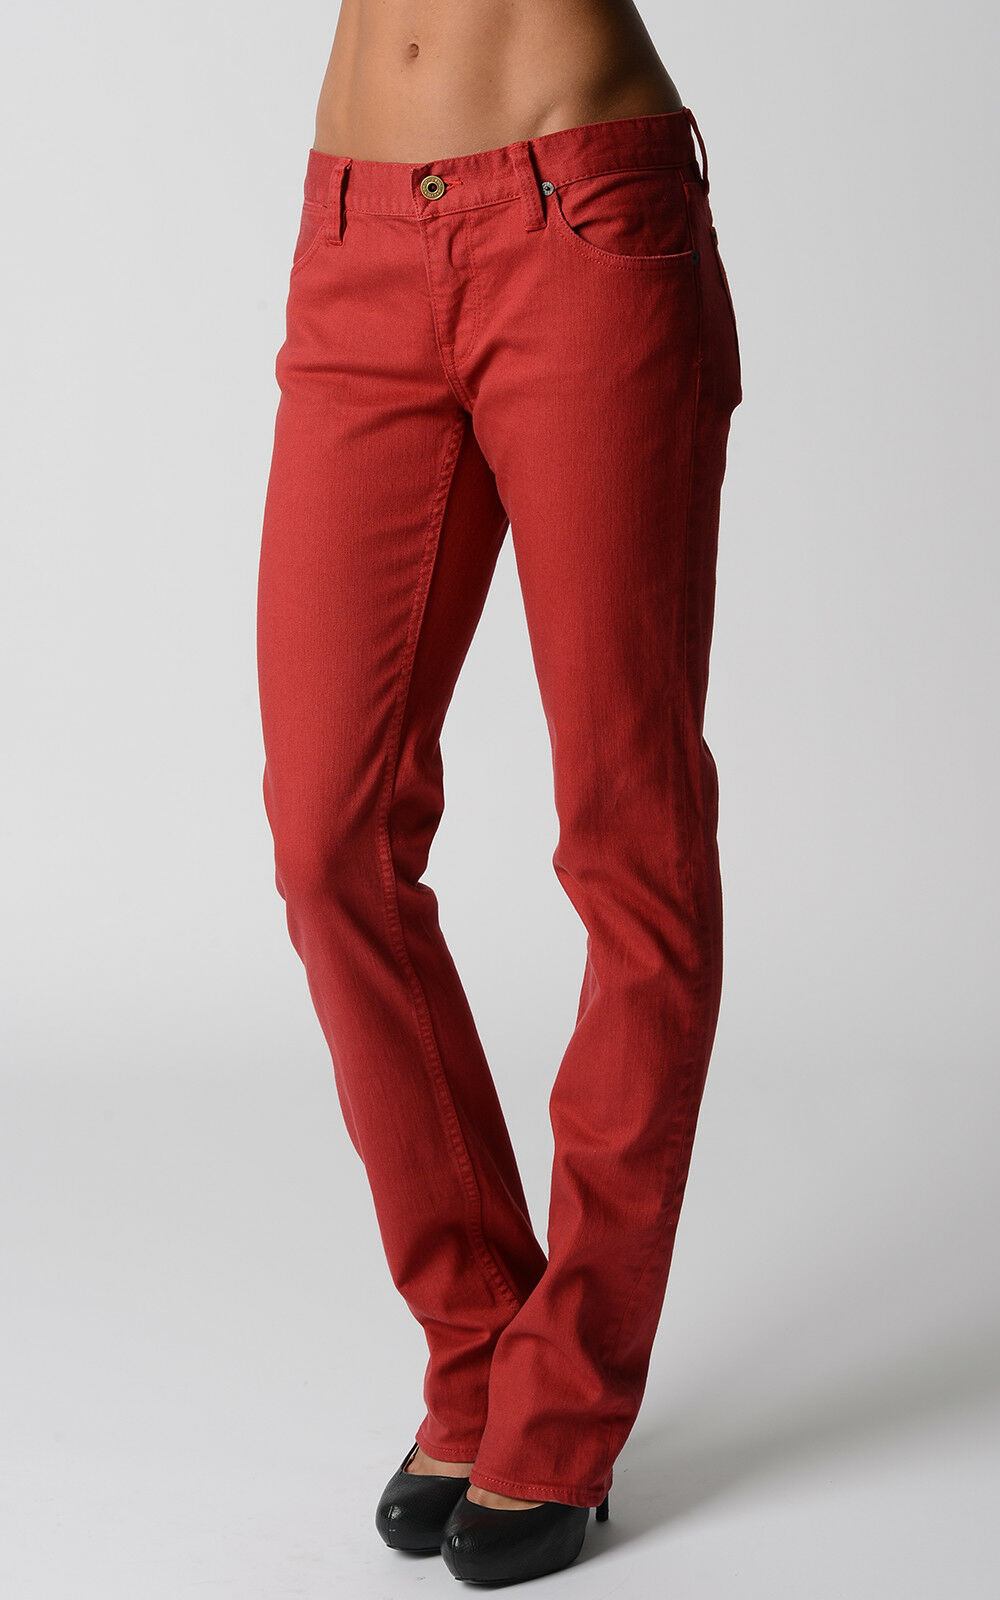 Ralph Lauren Womens Jeans Madison Boot Red Wash Pants Gift For Her NWT